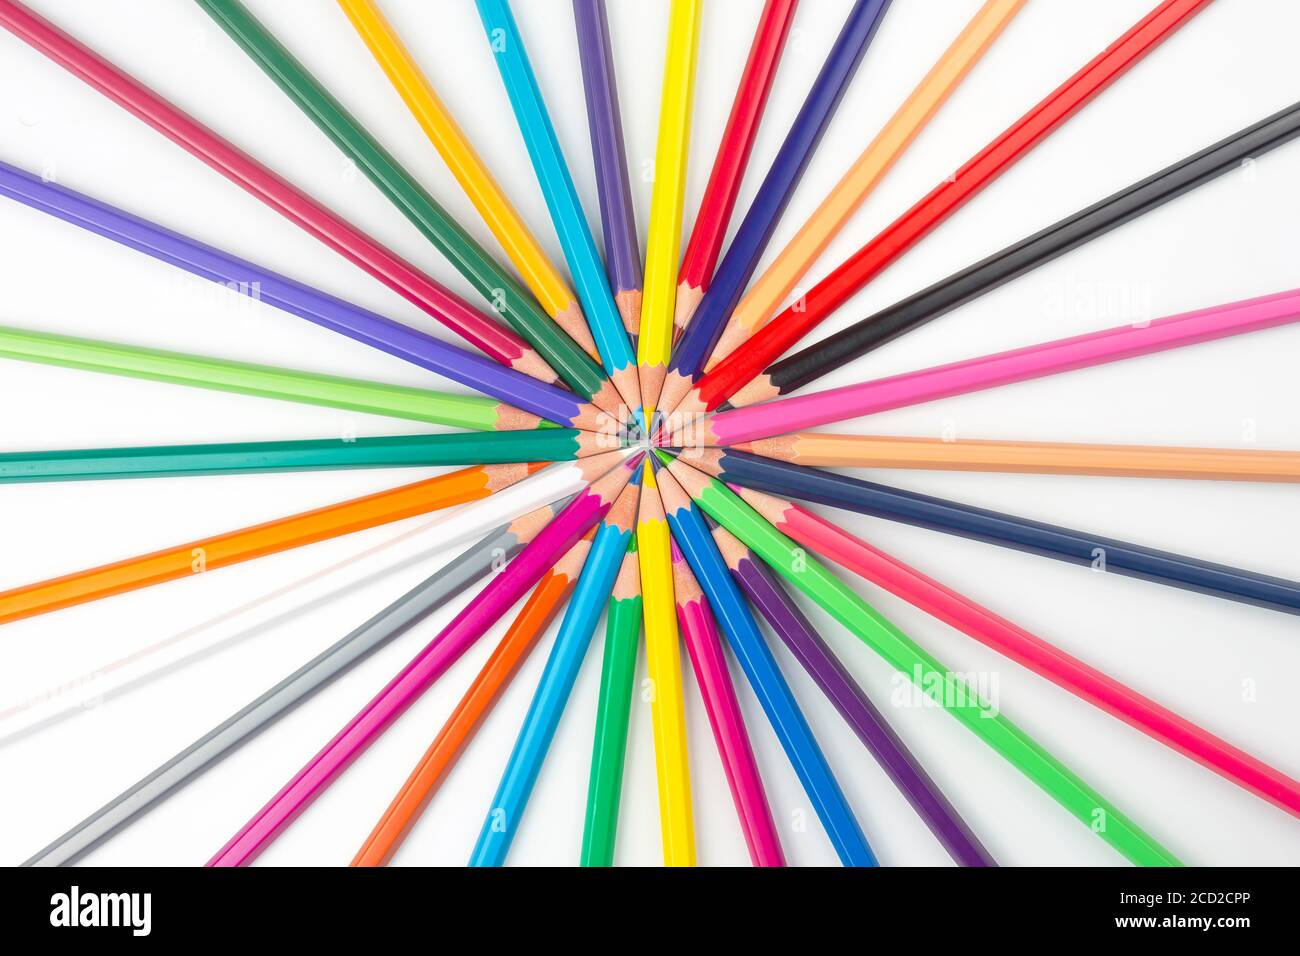 Colored pencils for drawing on a white background. Education and creativity. Leisure and art Stock Photo